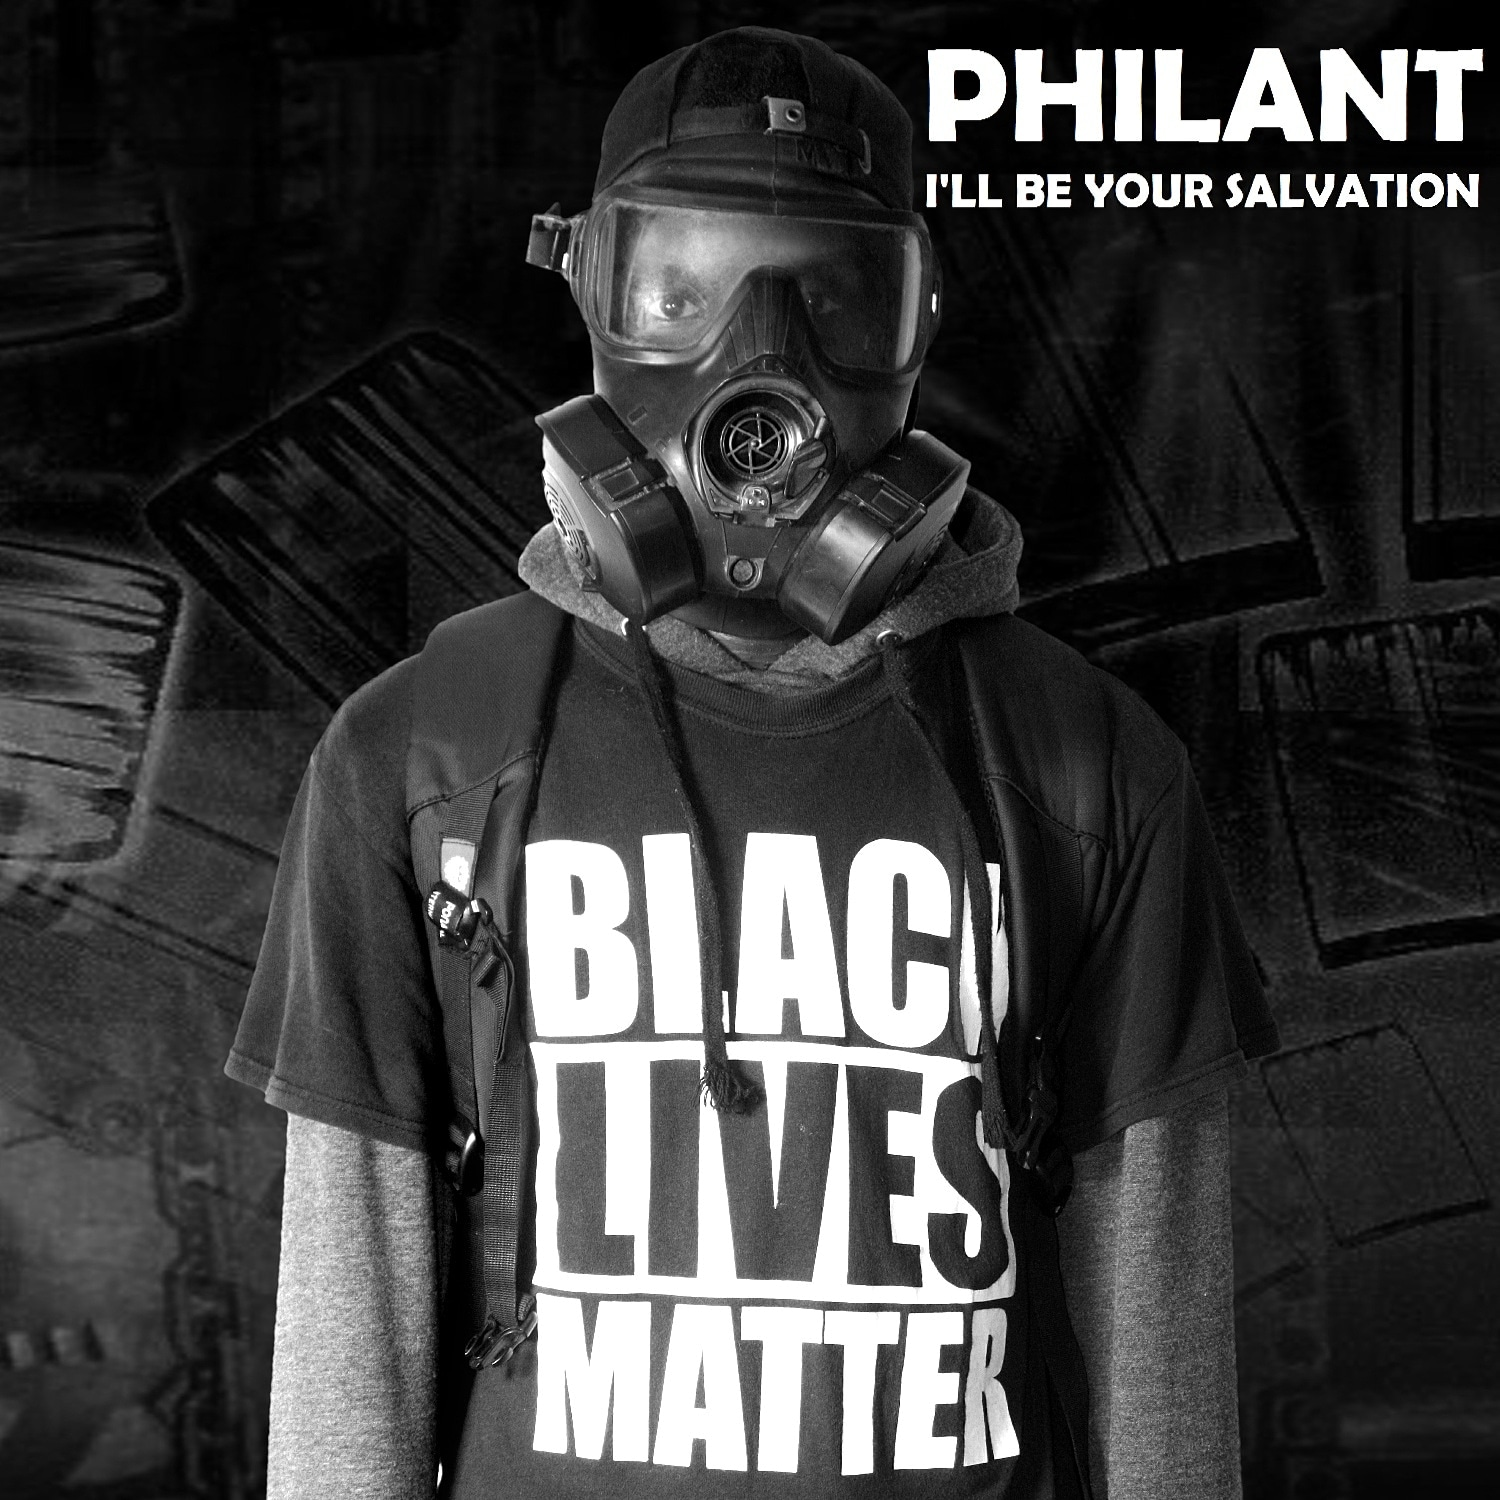 DOWNLOAD: I'll Be Your Salvation – Philant